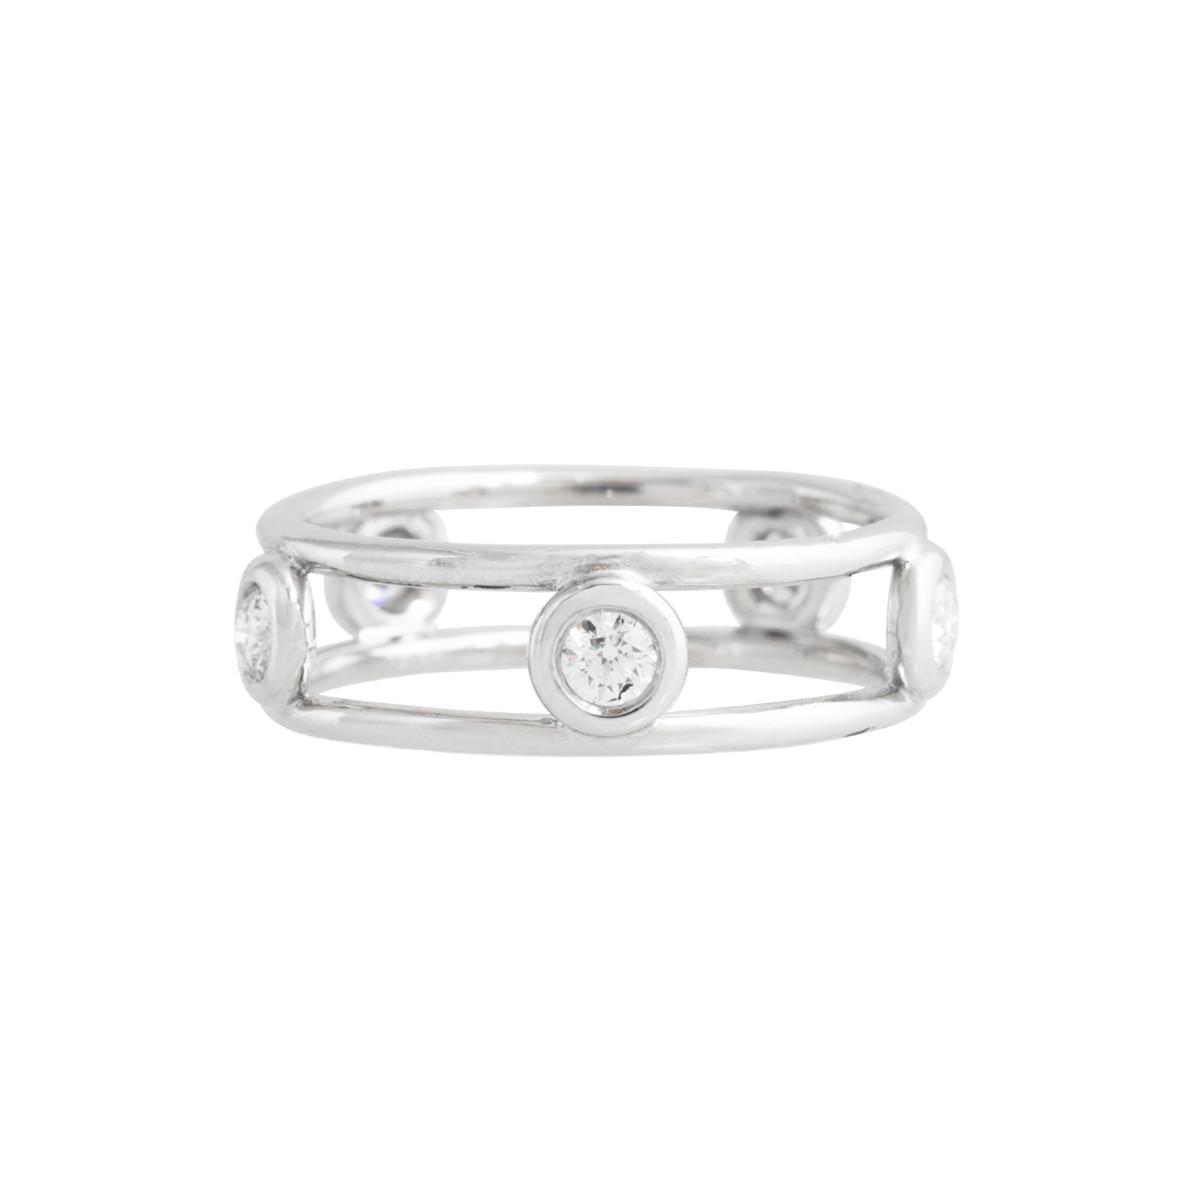 Vintage Tiffany & Co. 0.42 CTW 'Diamonds by the Yard' Ring